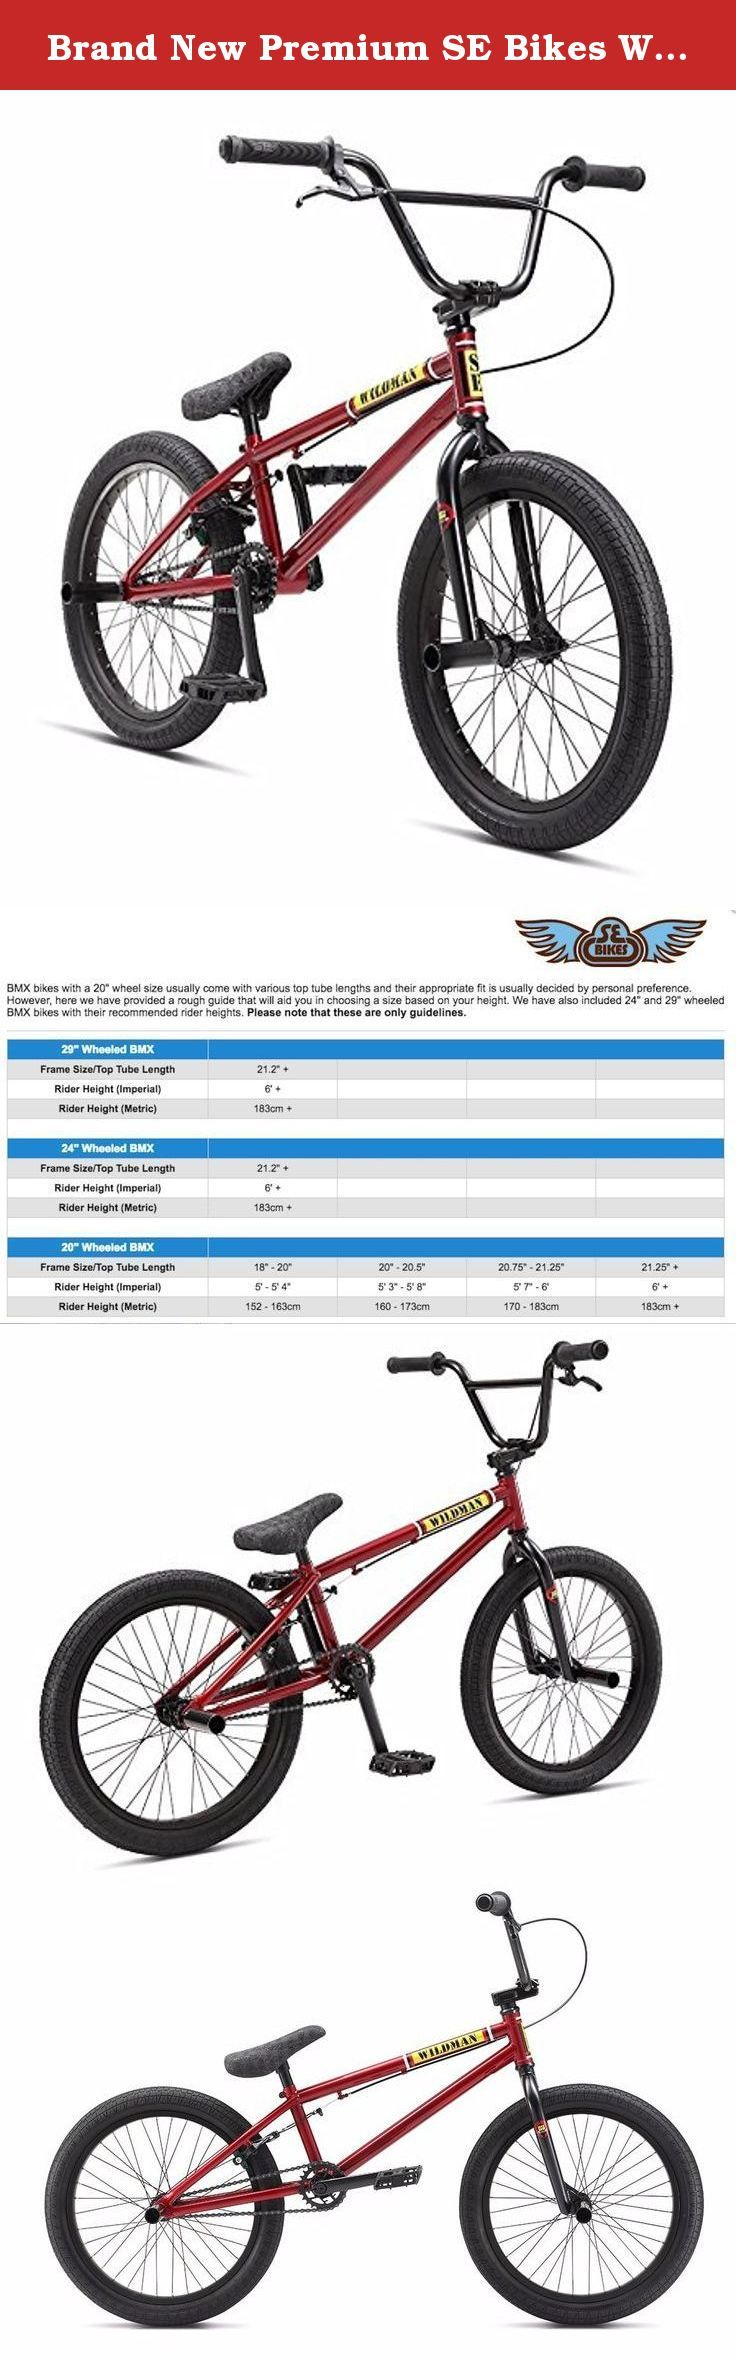 """Brand New Premium SE Bikes Wildman 20"""" BMX Bike 2017 Red Metal. SE Racing Wildman BMX Bike The new SE Racing Wildman BMX Bike has a more compact 19.5"""" top tube and a price tag that will get you hyped. With tapered leg SE forks with cut-out clearance for pegs, the Wildman is the perfect choice for the new BMXer. It's small and light enough to throw around on the ramps and dirt jump tracks, and with the 25Tx9T gearing and wider 2.3"""" tyres to provide more traction and forgiveness when…"""